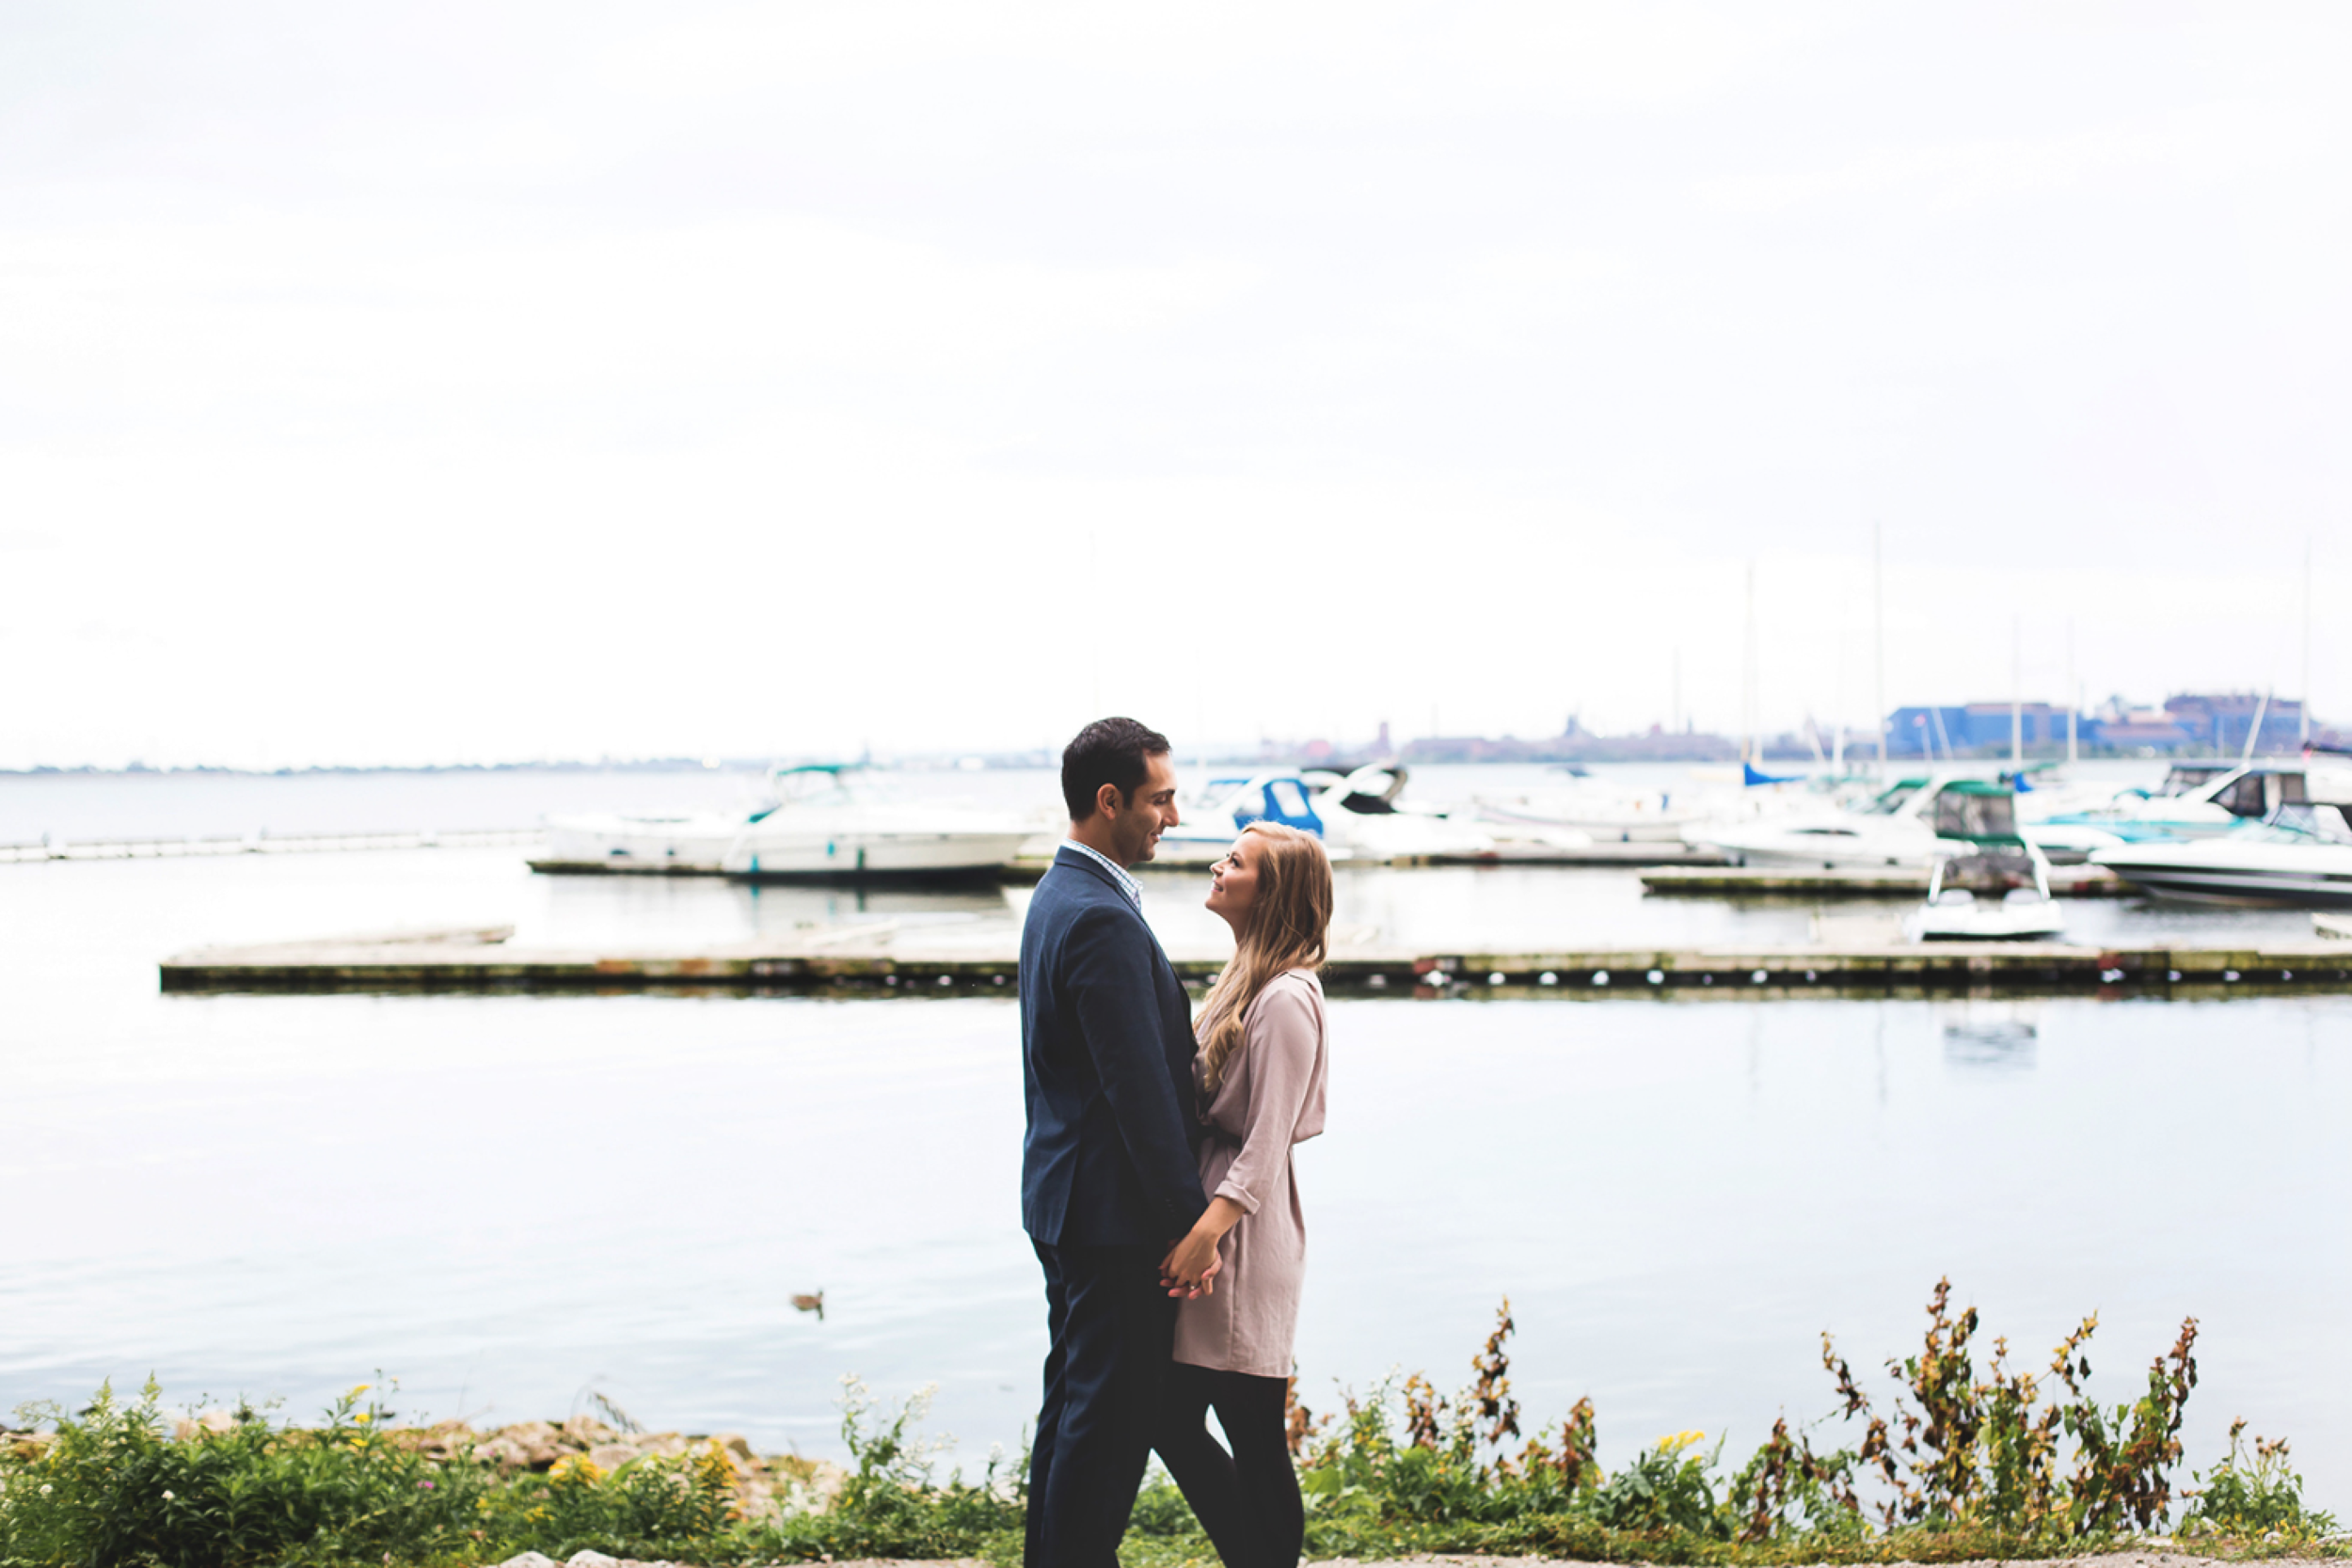 Engagement-Session-Hamilton-Burlington-Oakville-Niagara-Toronto-Wedding-Photographer-Engaged-Photography-Waterfront-Engaged-Golden-Hour-Moments-by-Lauren-Photo-Image-10.png